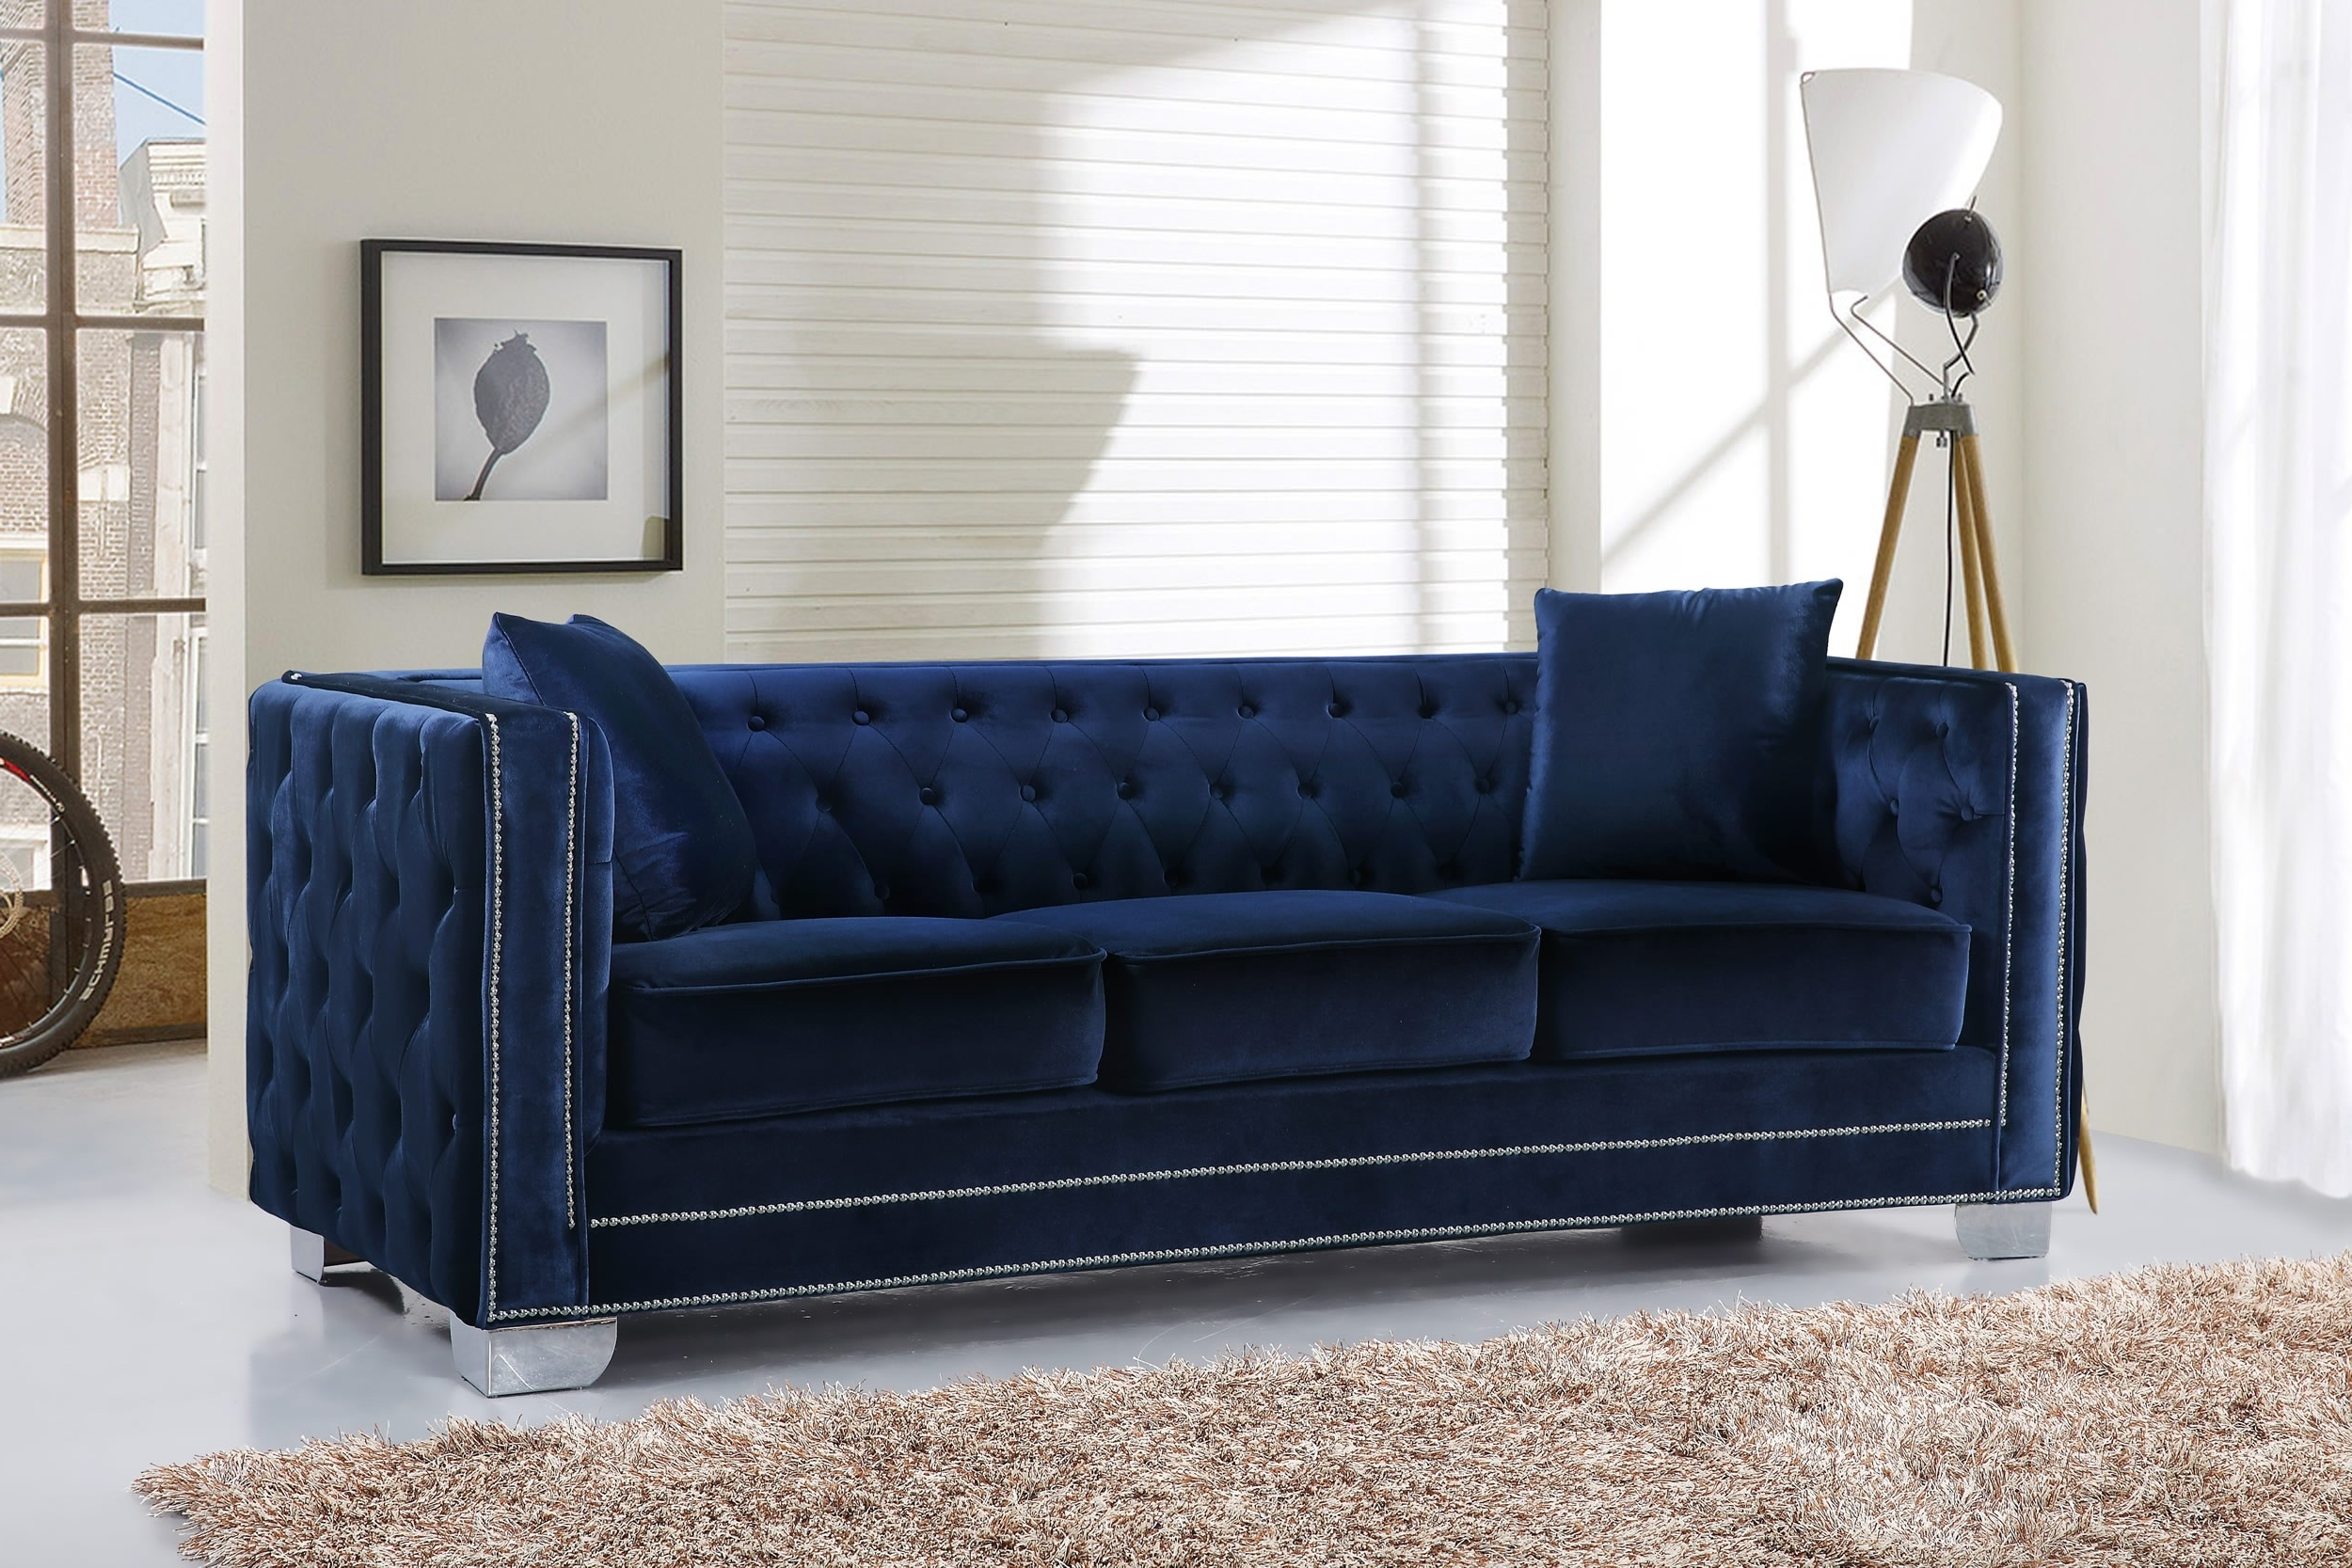 Velvet Sofas For Current Reese Velvet Sofa, Navy Buy Online At Best Price – Sohomod (View 12 of 20)